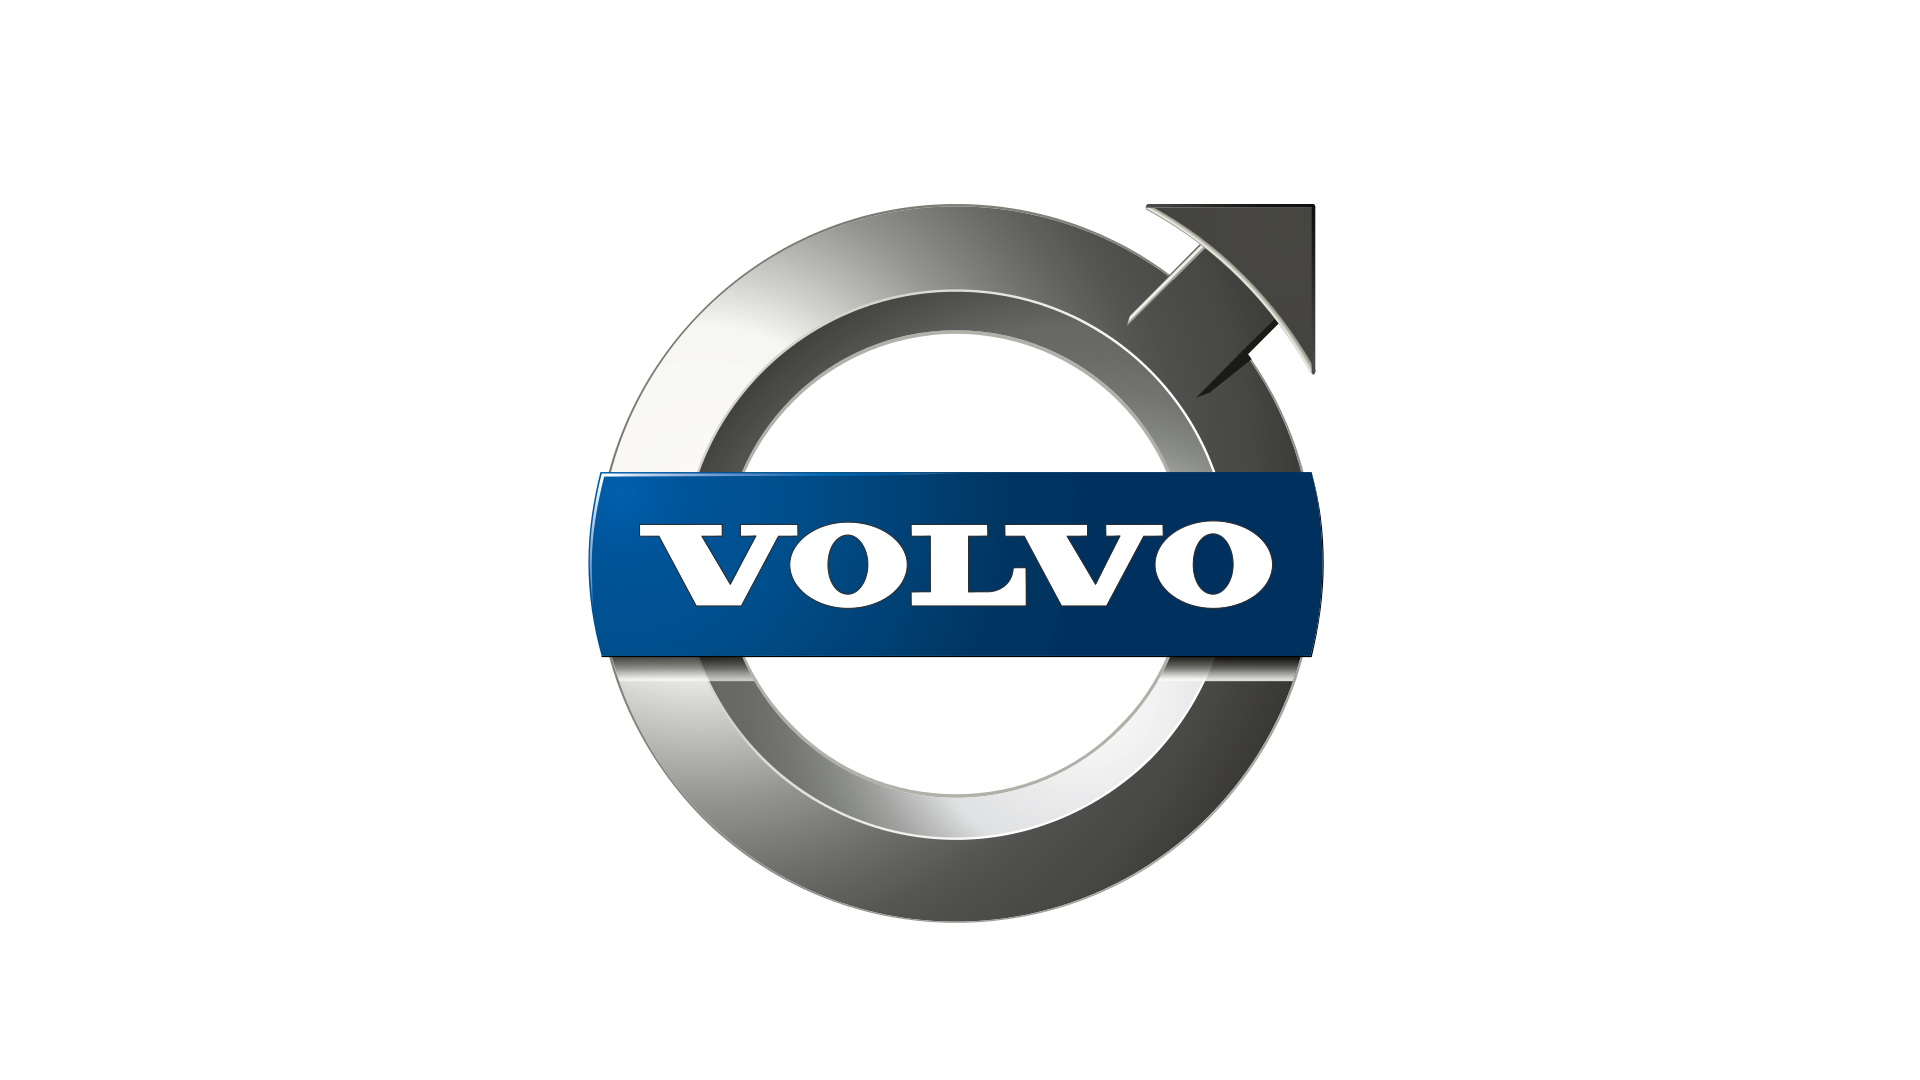 Volvo Logo, HD 1080p, Png, Meaning, Information | CarLogos.org